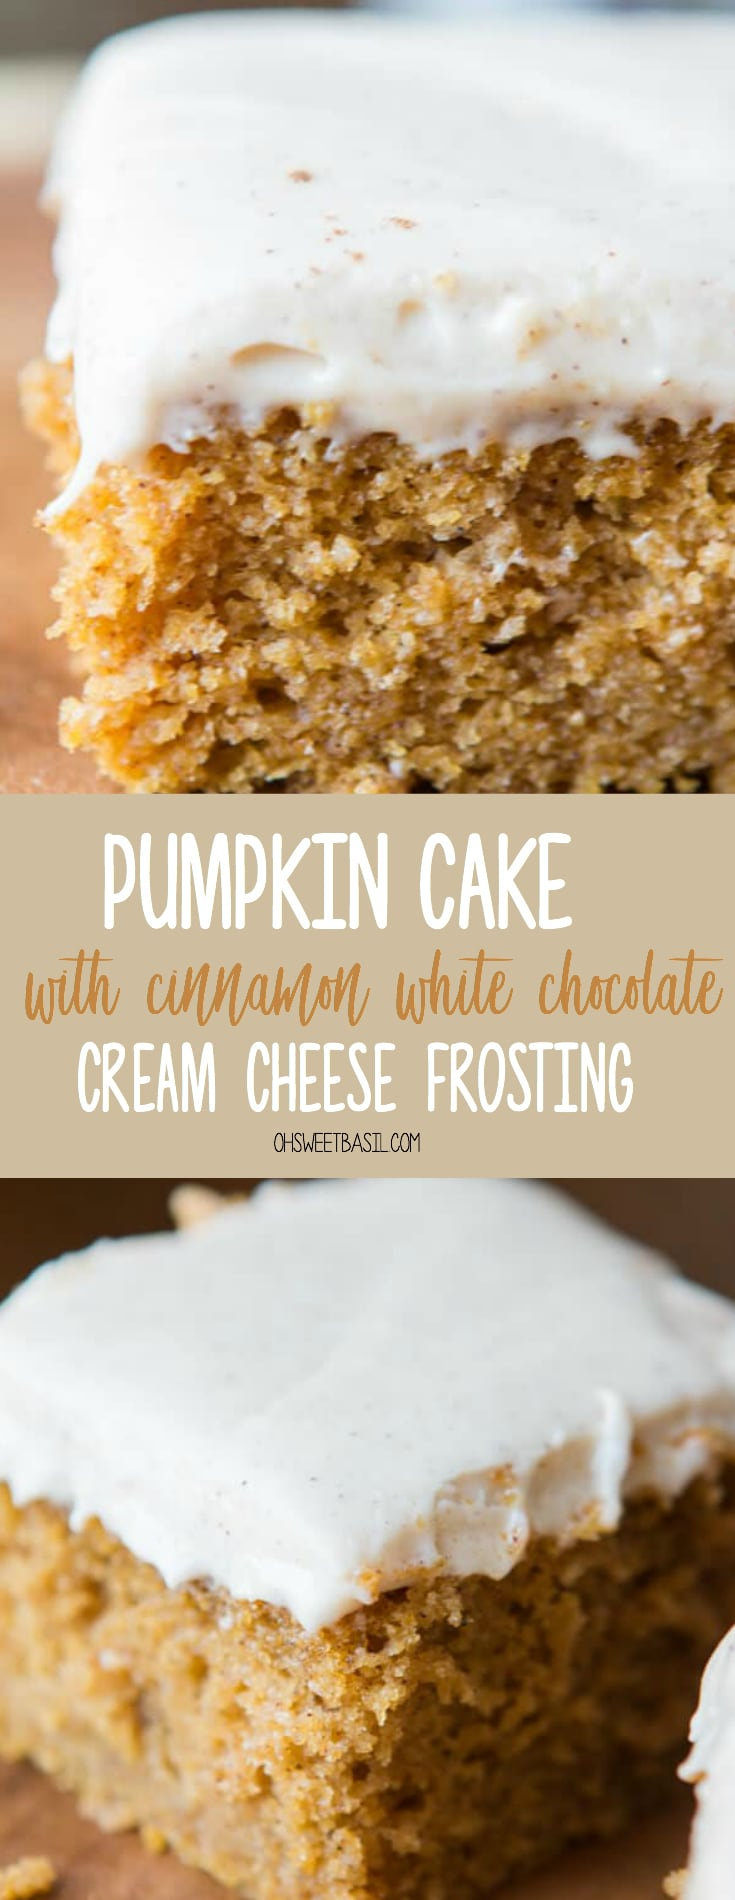 A slice of Pumpkin Cake with Cinnamon White Chocolate Cream Frosting